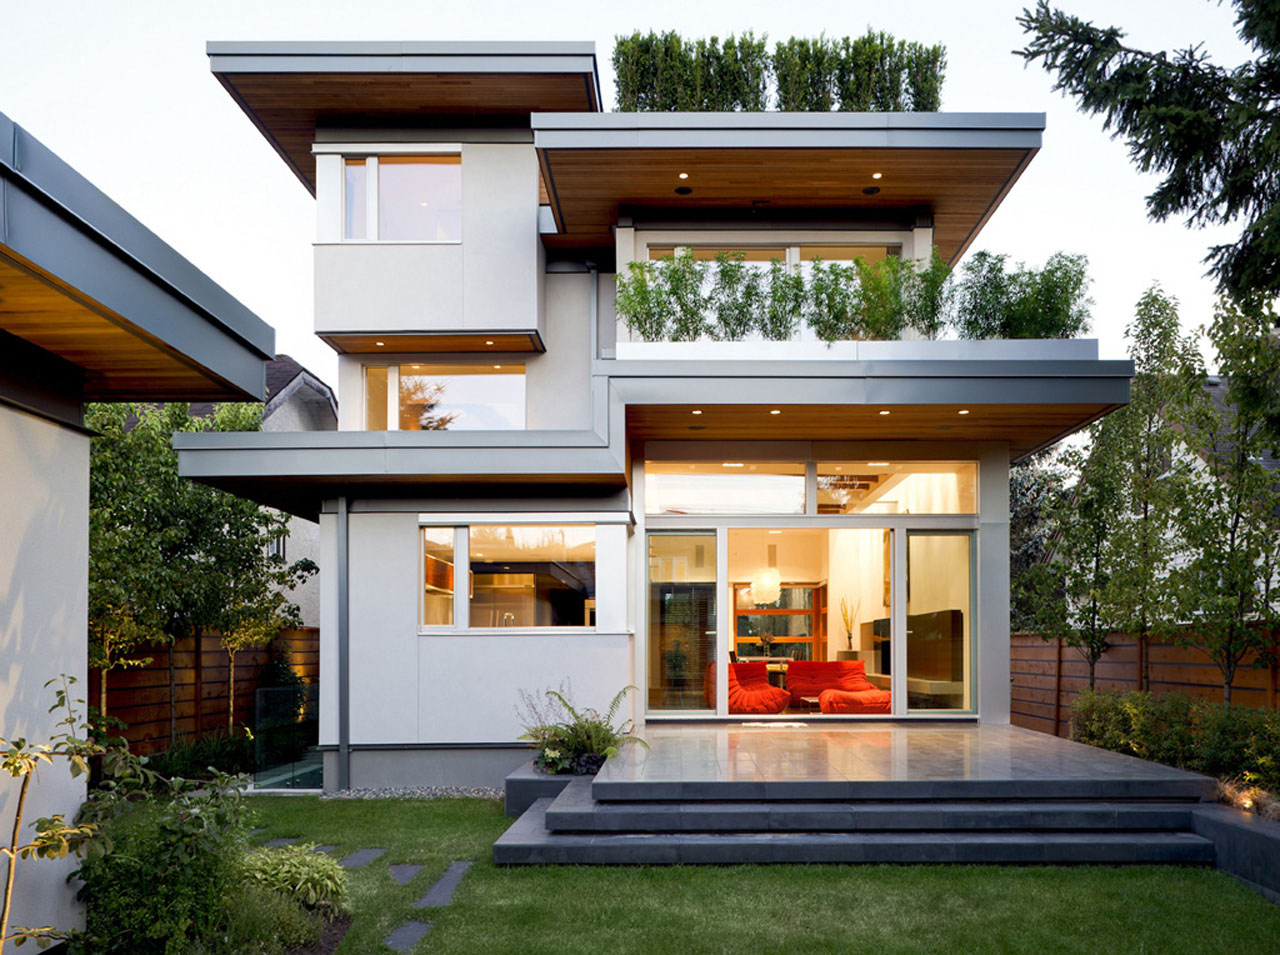 sustainable home design in vancouver - Home Design Photos